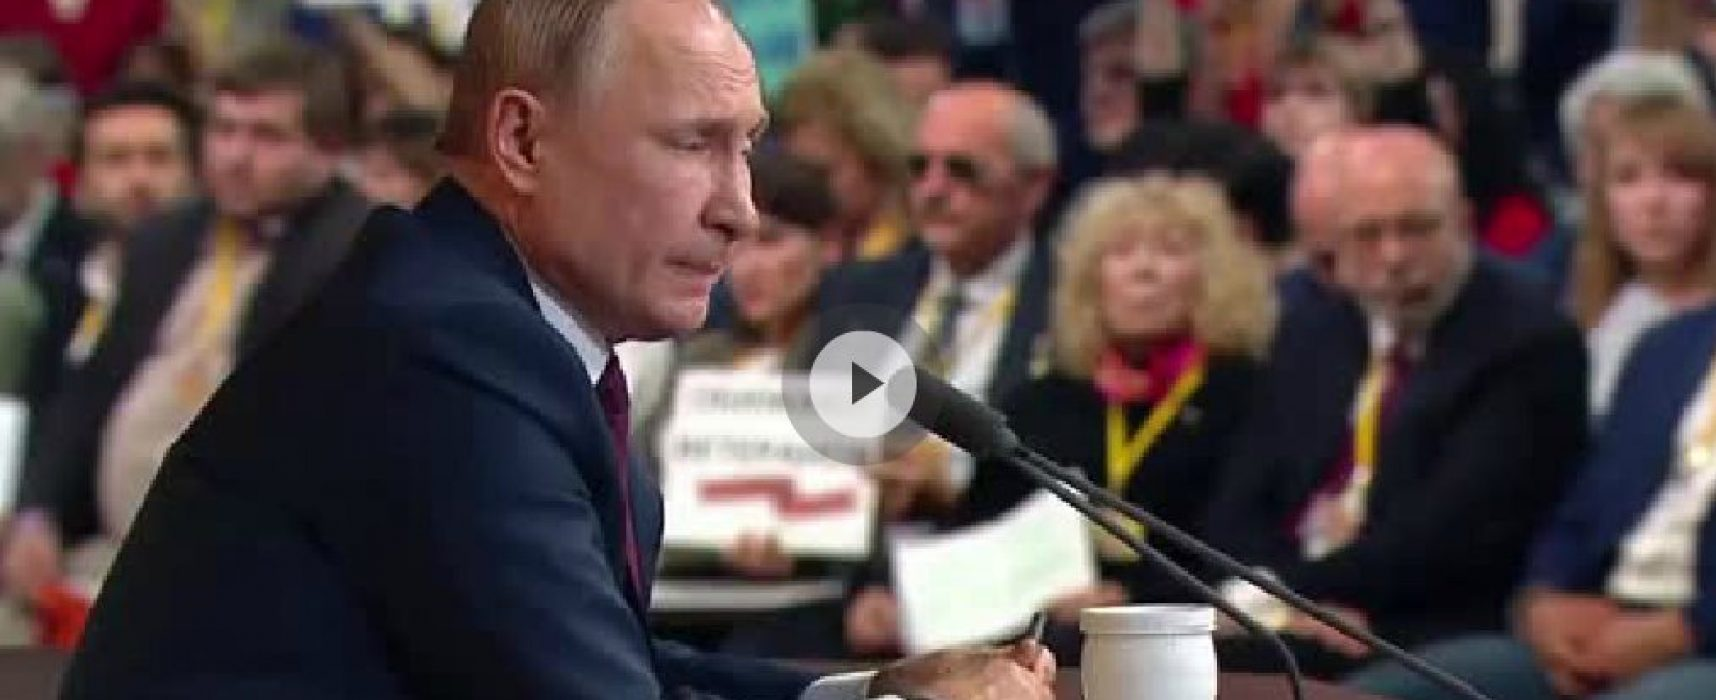 At his 15th year-end presser, Putin recycles false claims